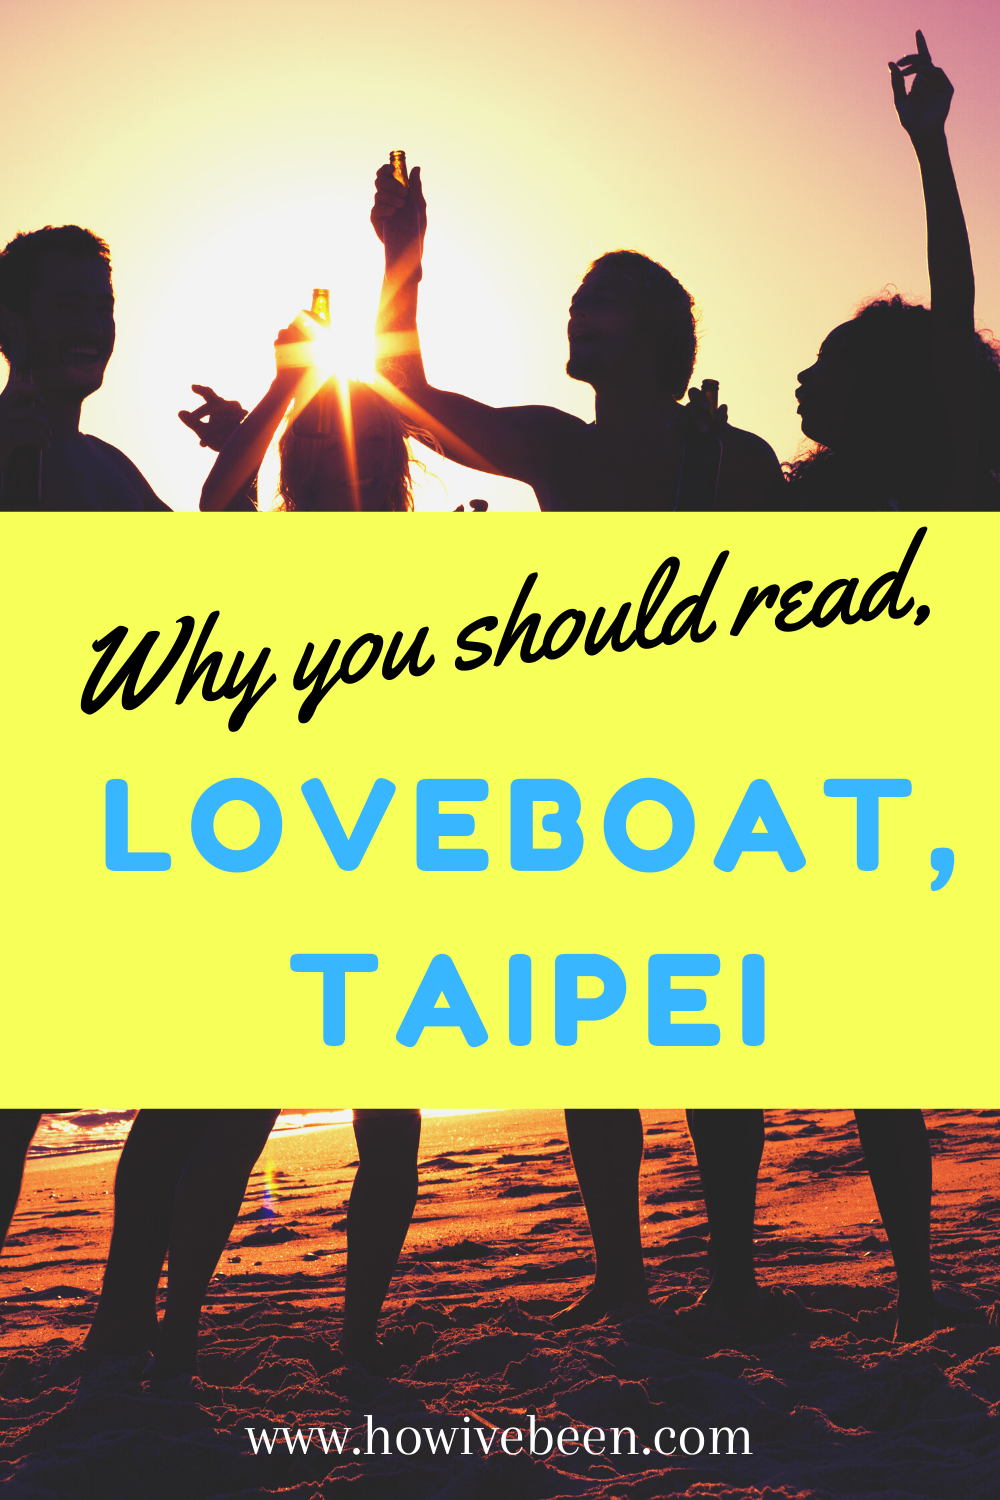 Loveboat, Taipei by Abigail Hing Wen book review